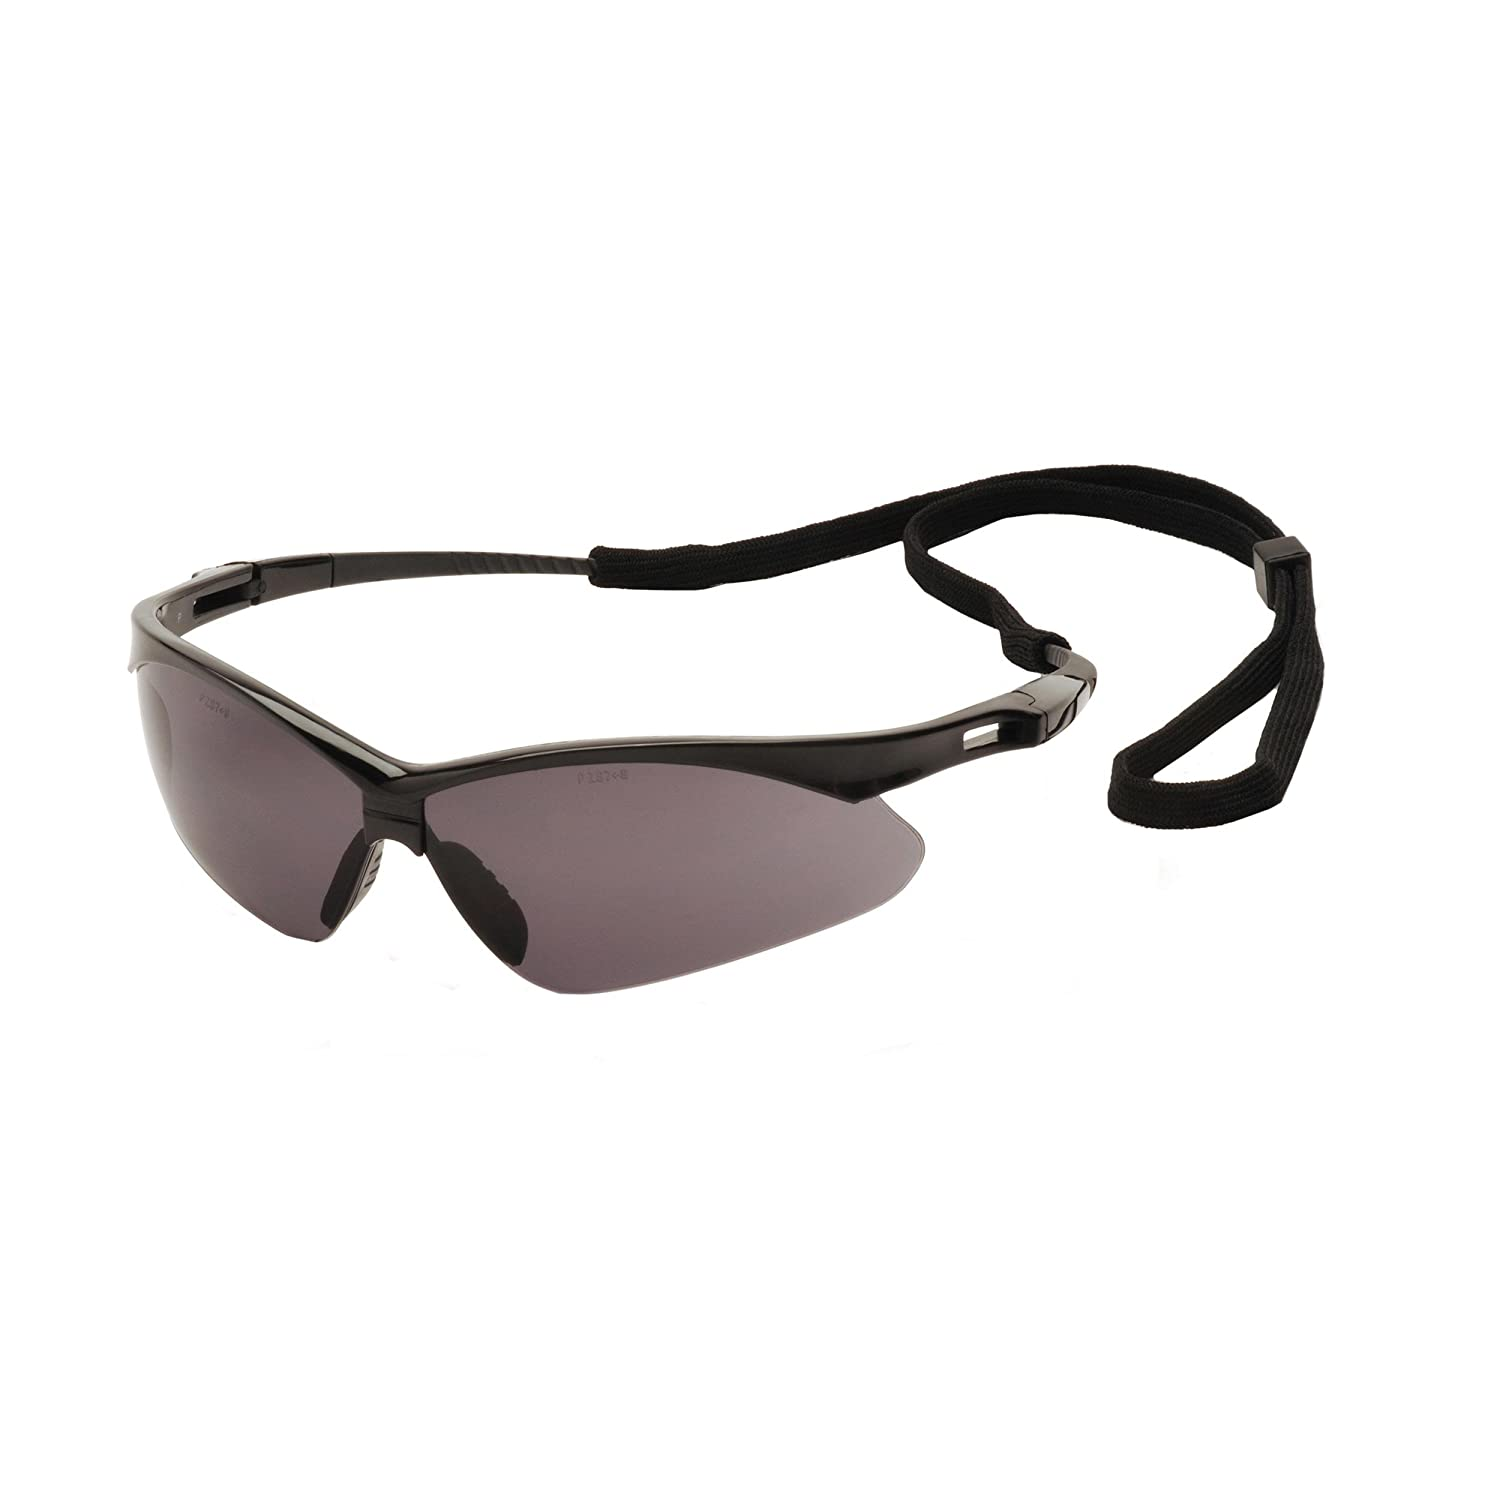 7425a50d23b Amazon.com  Pyramex Safety Products Pmxtreme Safety Glasses